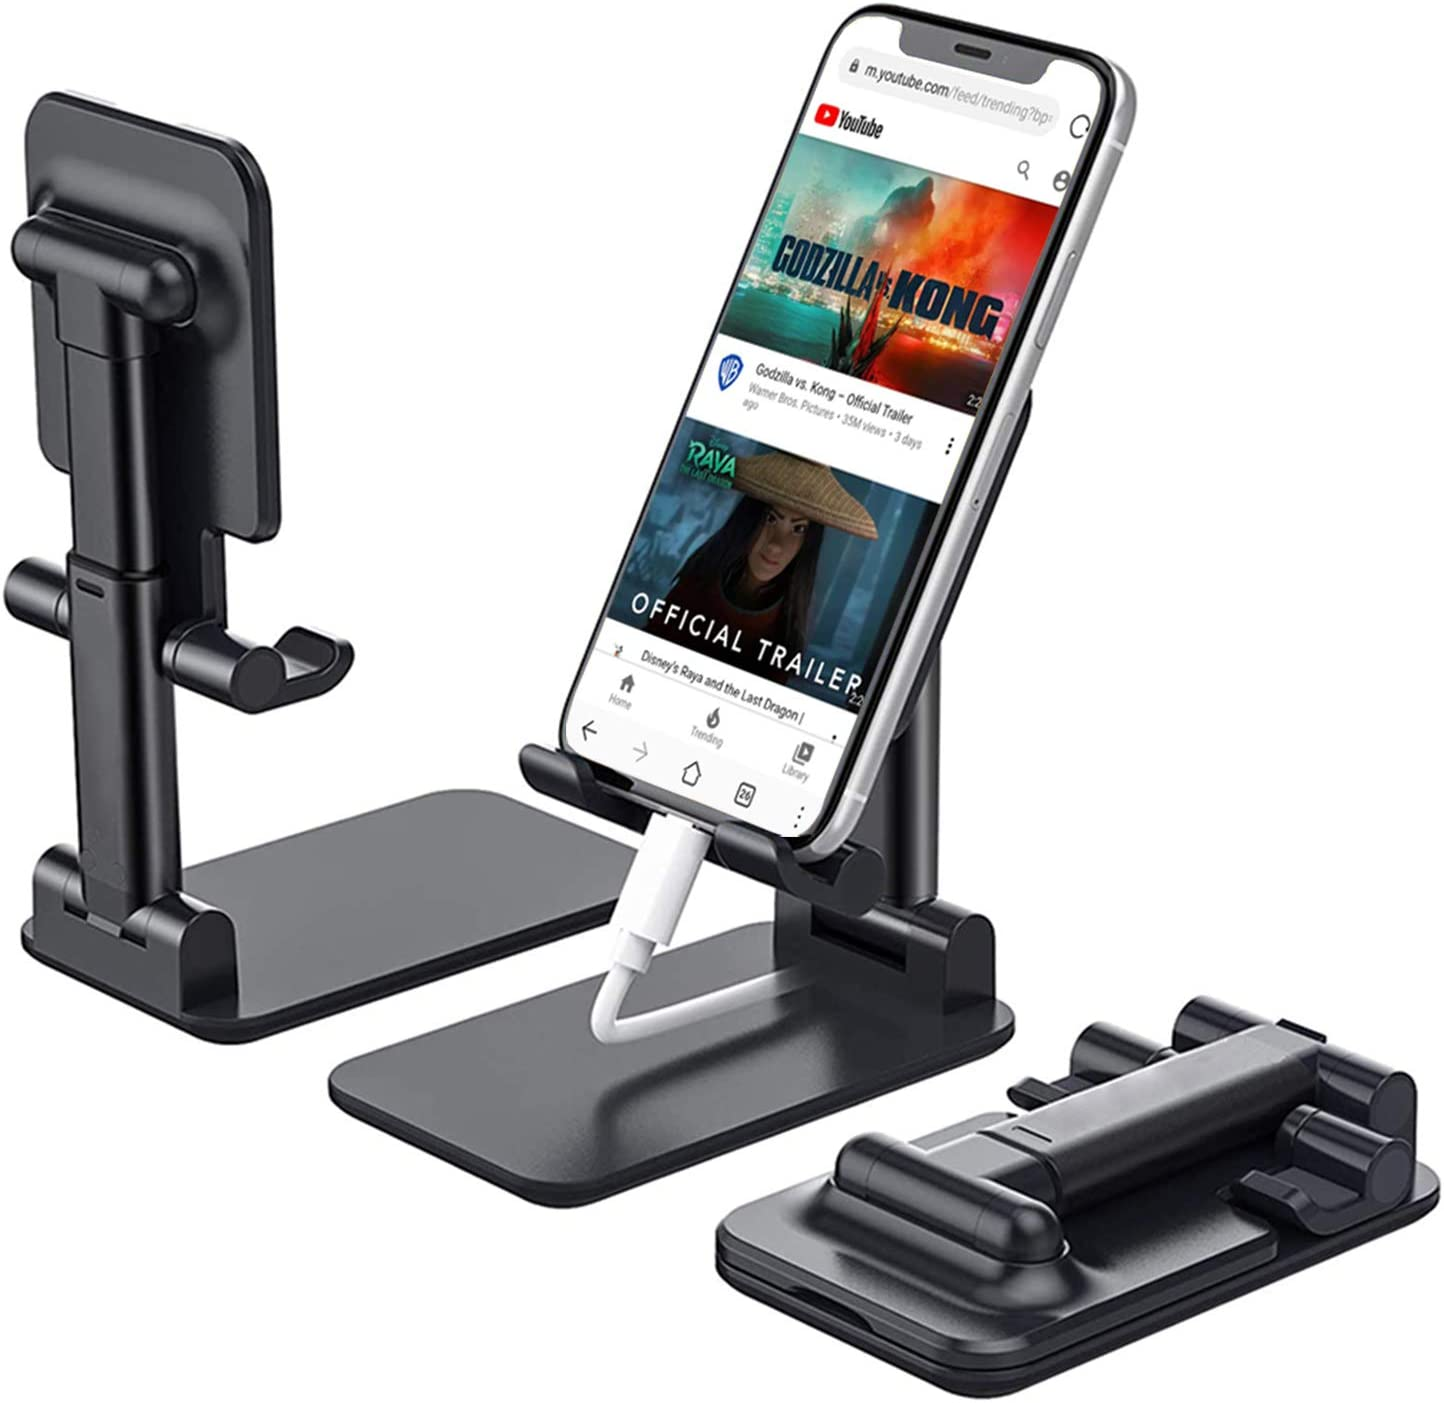 Cell Phone Stand, Angle Height Adjustable Cell Phone Stand for Desk, Foldable Cell Phone Holder, Cradle, Dock, Tablet Stand, Case Friendly Compatible with All Mobile Phone/iPad/Kindle/Tablet